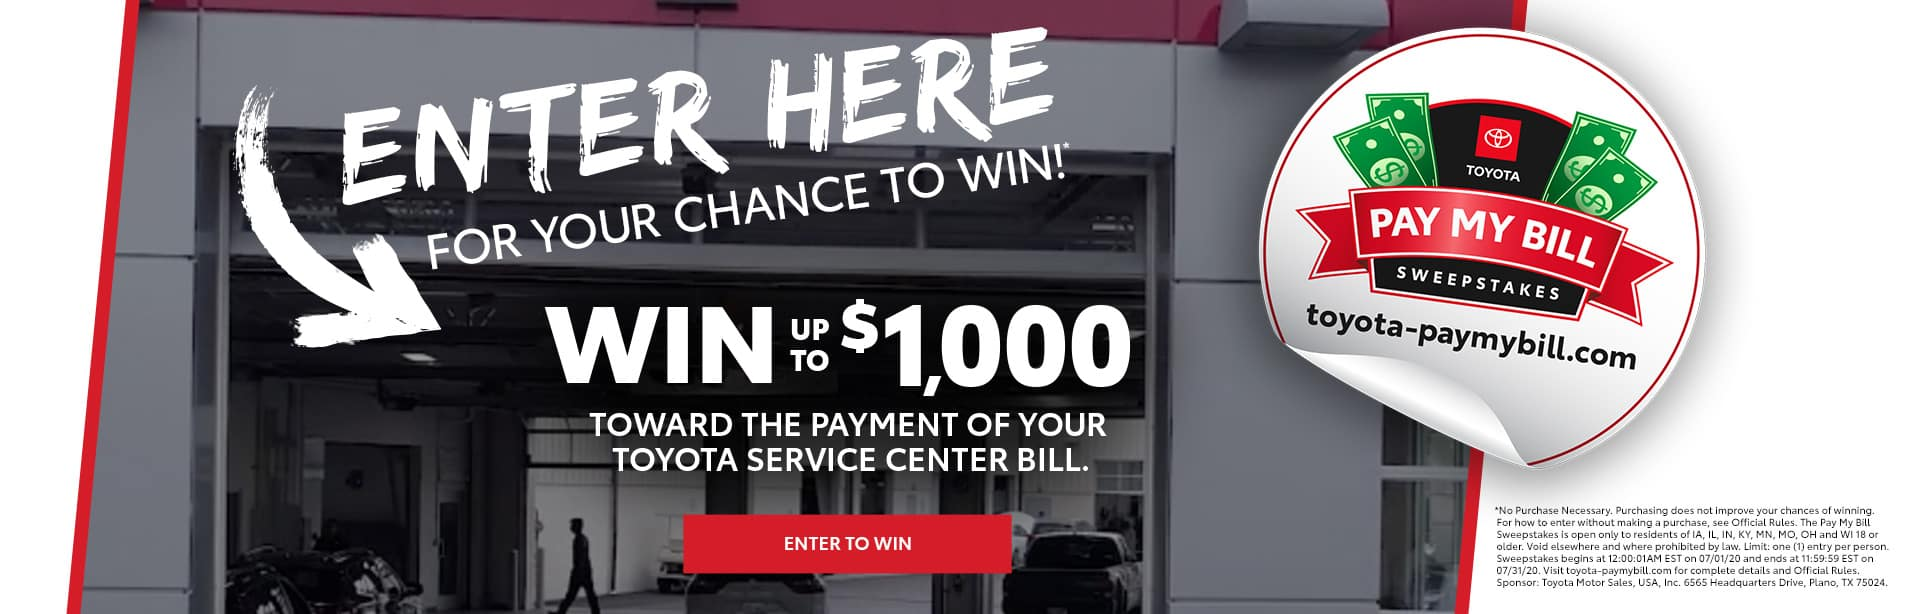 Toyota of Merrillville Pay My Bill Sweepstakes